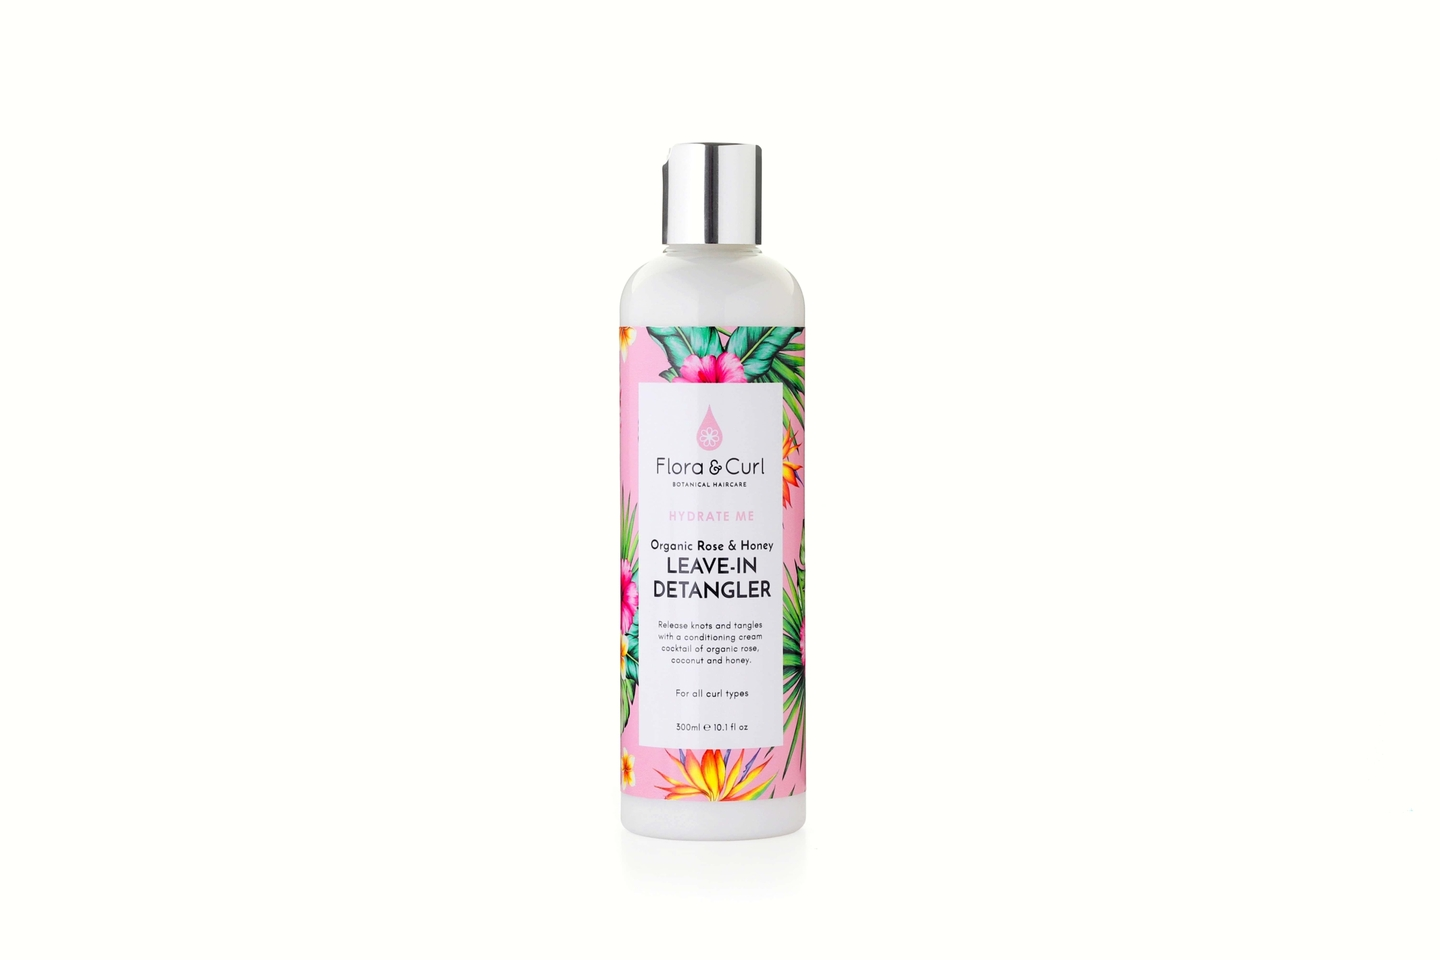 Organic Rose & Honey Leave-in Detangler  - Flora & Curl